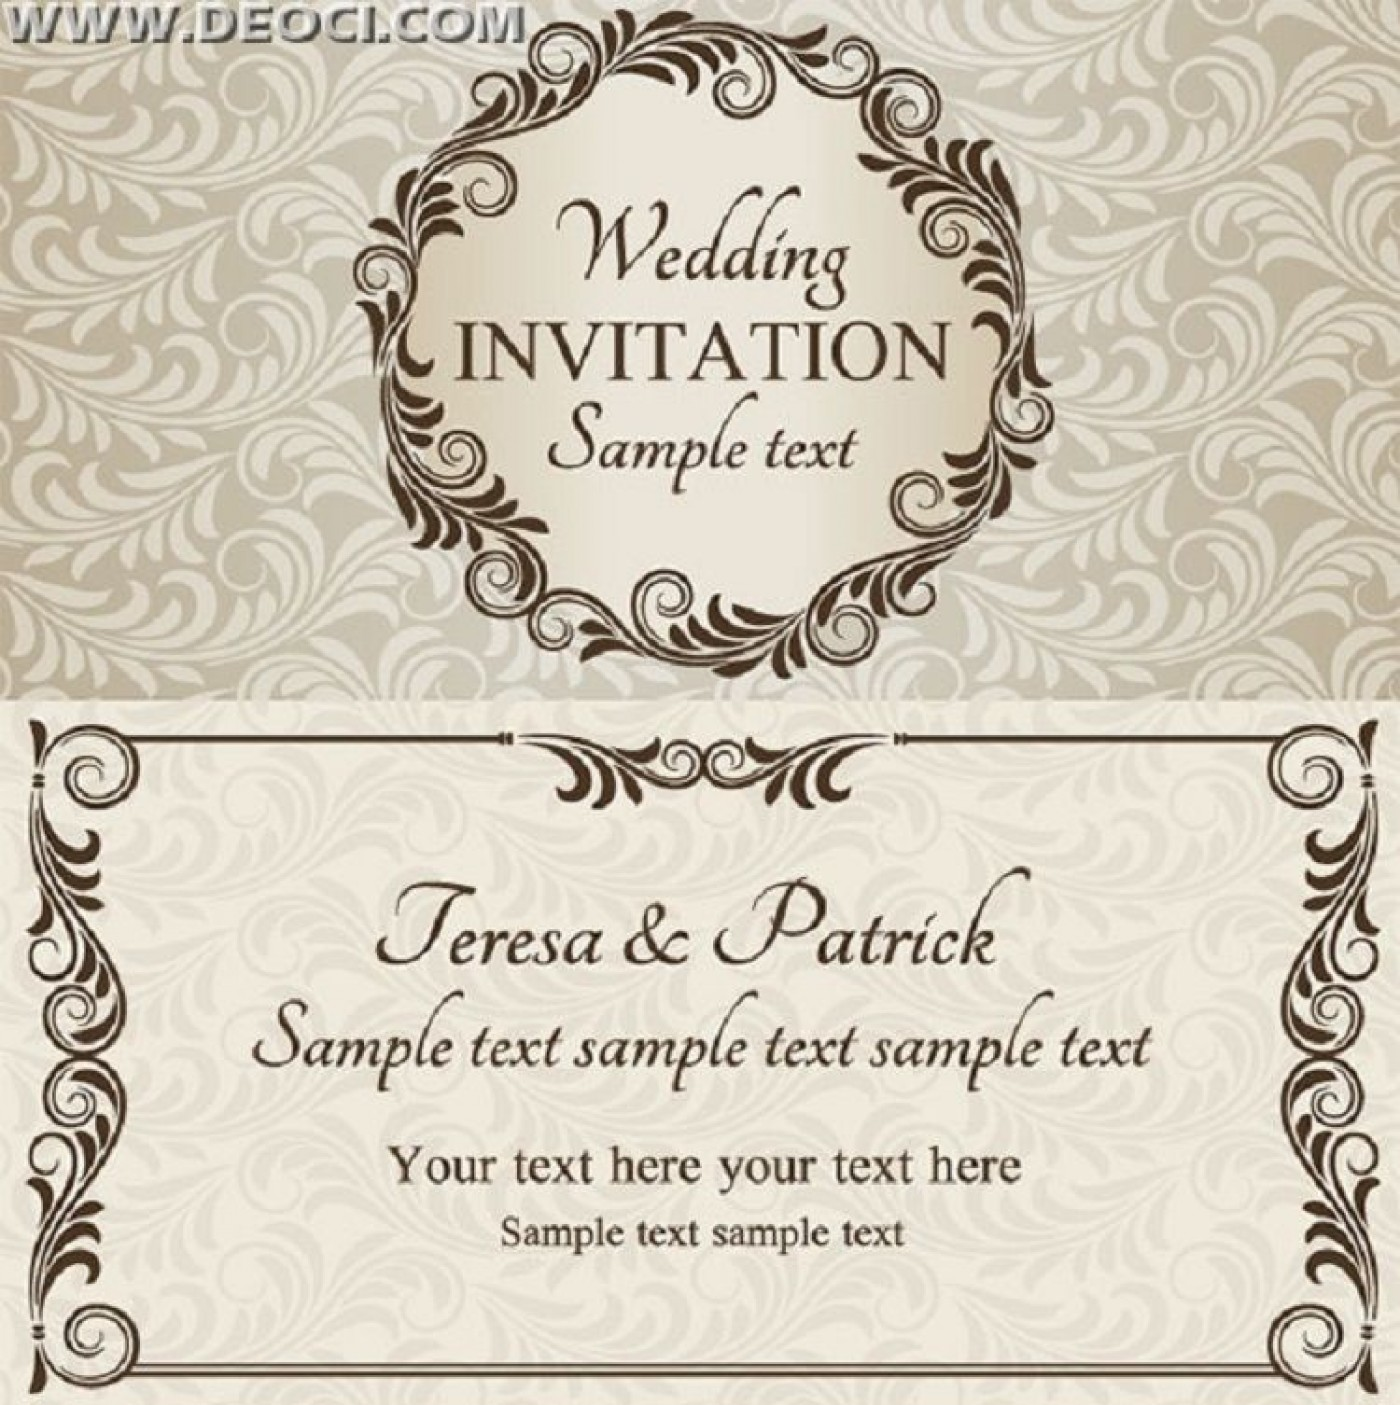 003 Remarkable Free Download Invitation Card Design Example  Birthday Party Blank Wedding Template Software1400